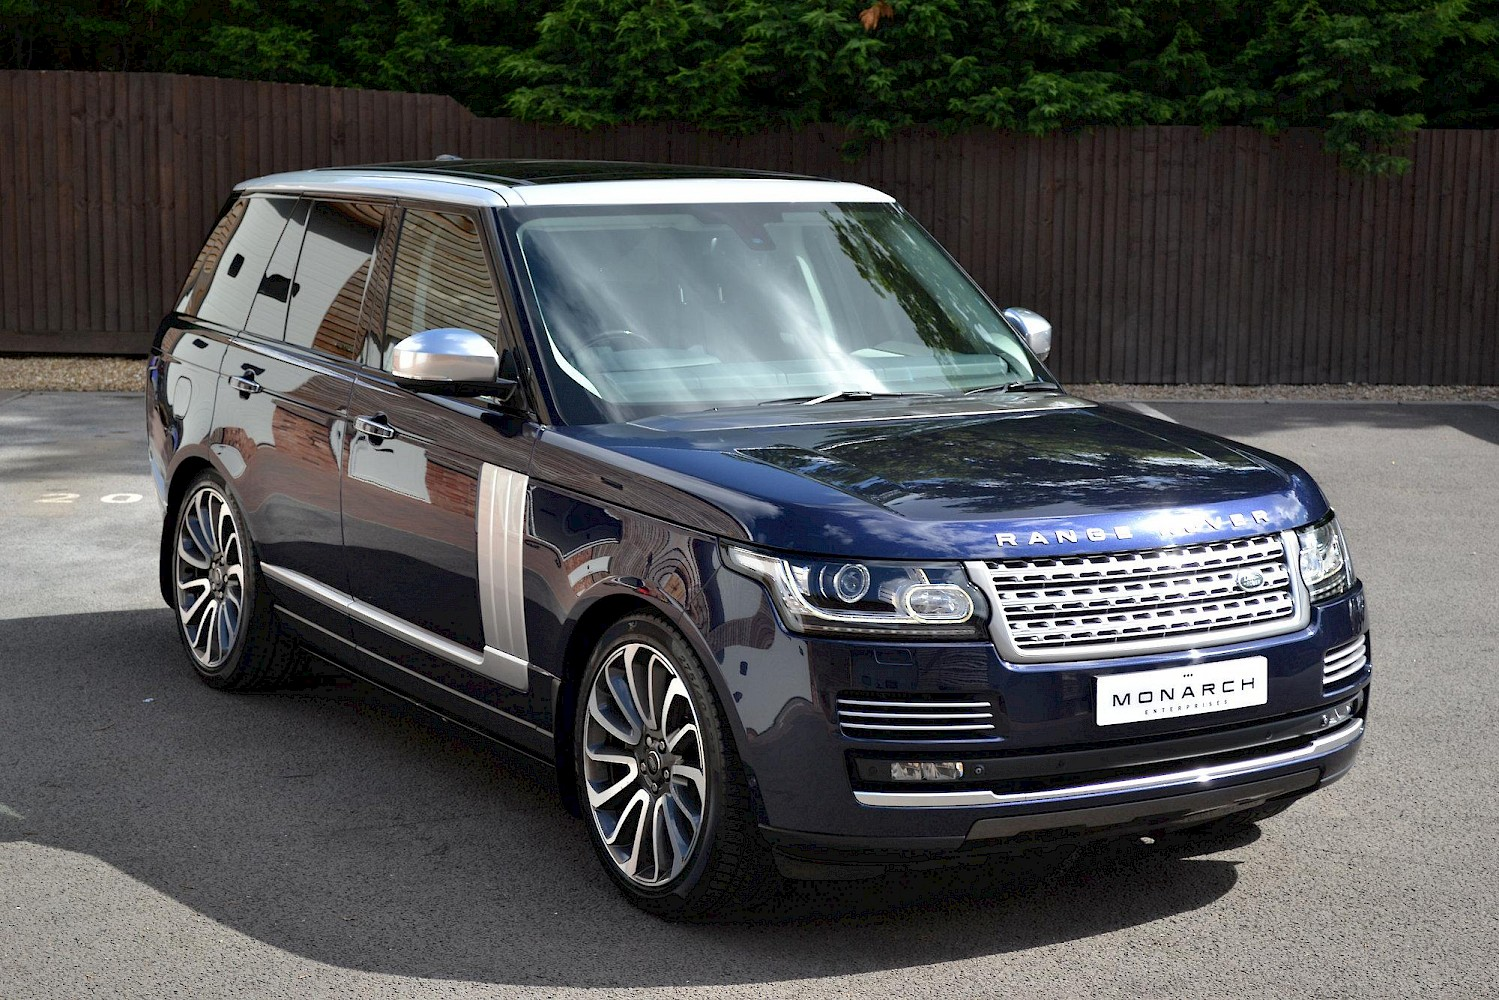 2013 63 land rover range rover 4 4 autobiography cars monarch enterprises. Black Bedroom Furniture Sets. Home Design Ideas